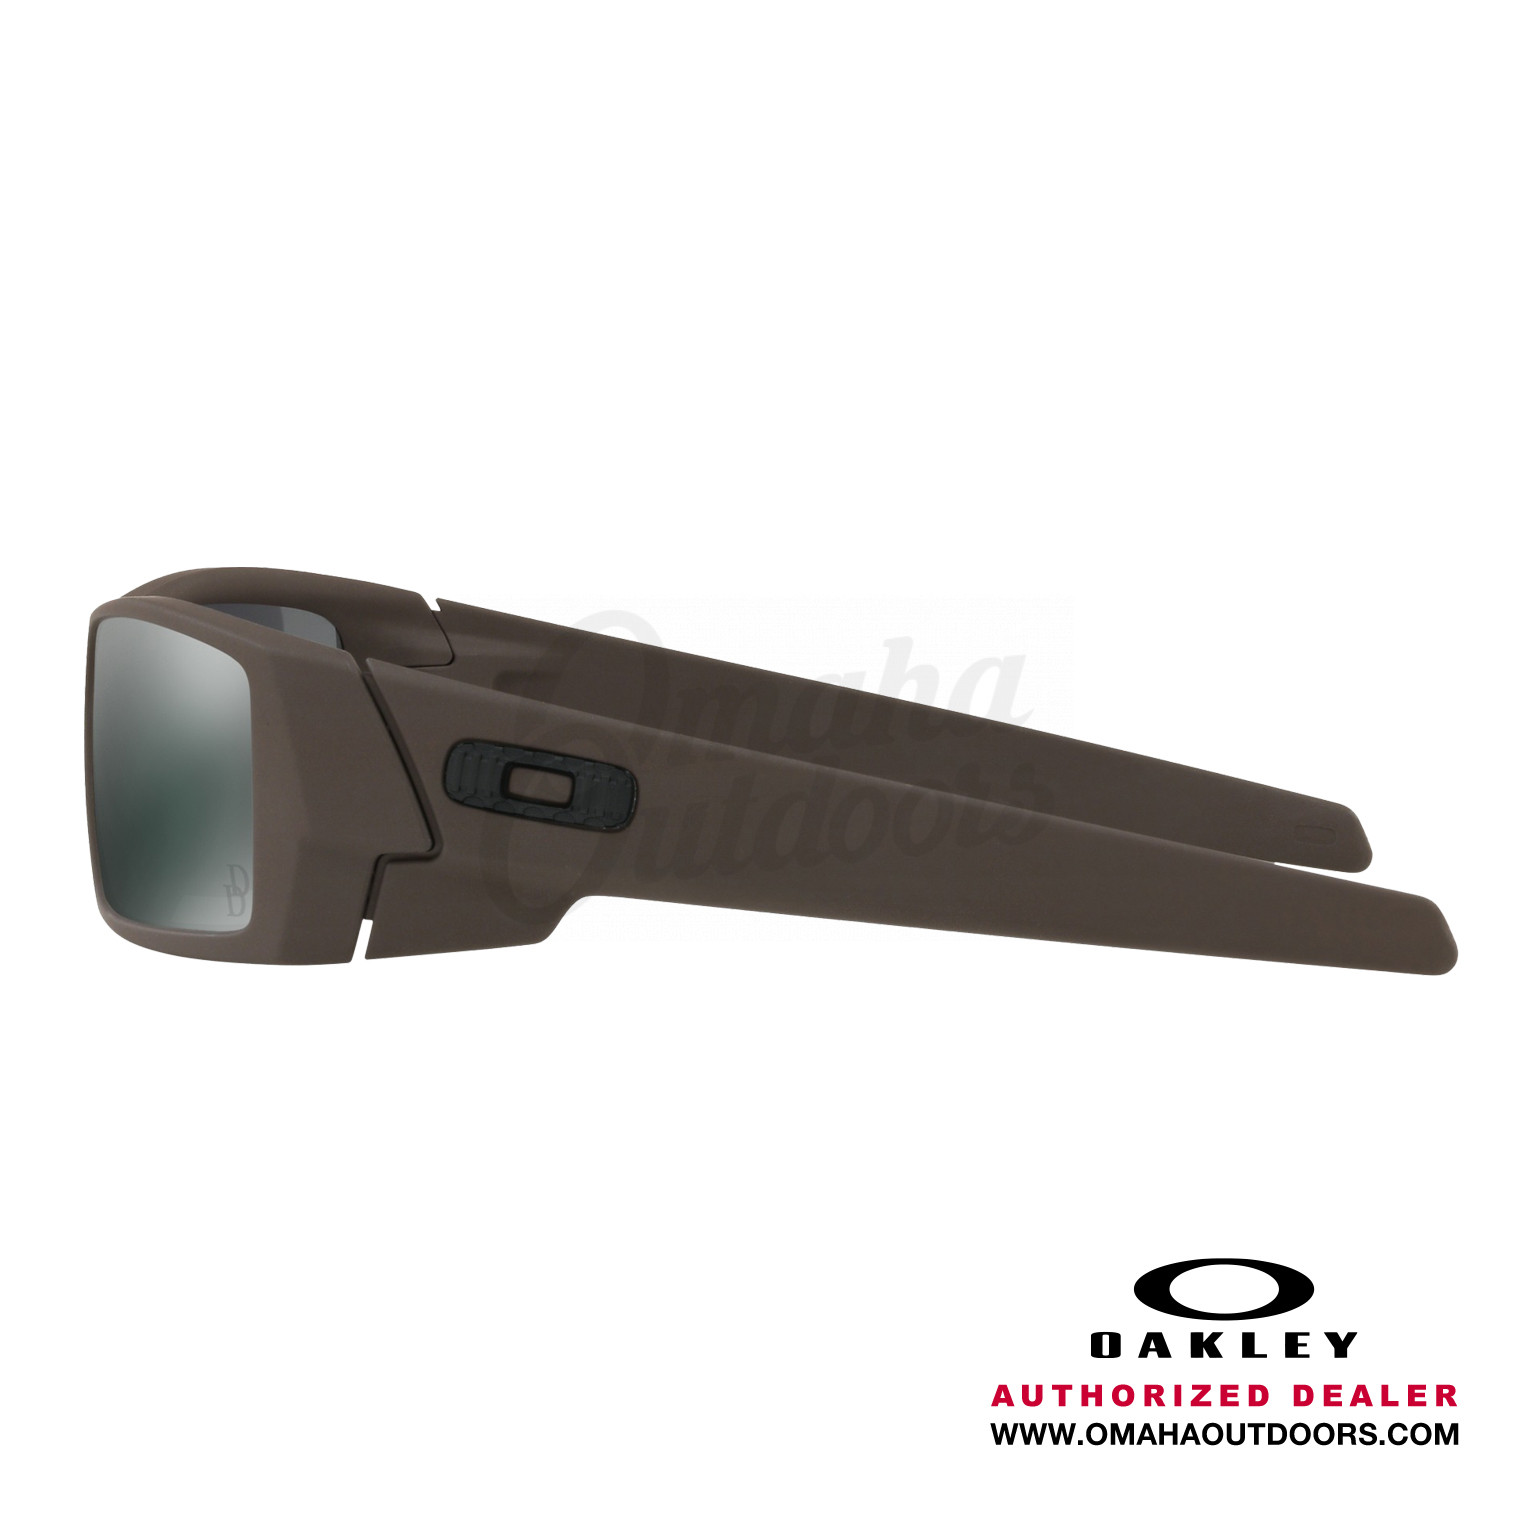 50d121db624 Oakley Daniel Defense Gascan Desert Tan Sunglasses Black Iridium Lens ·  OO9014-2160